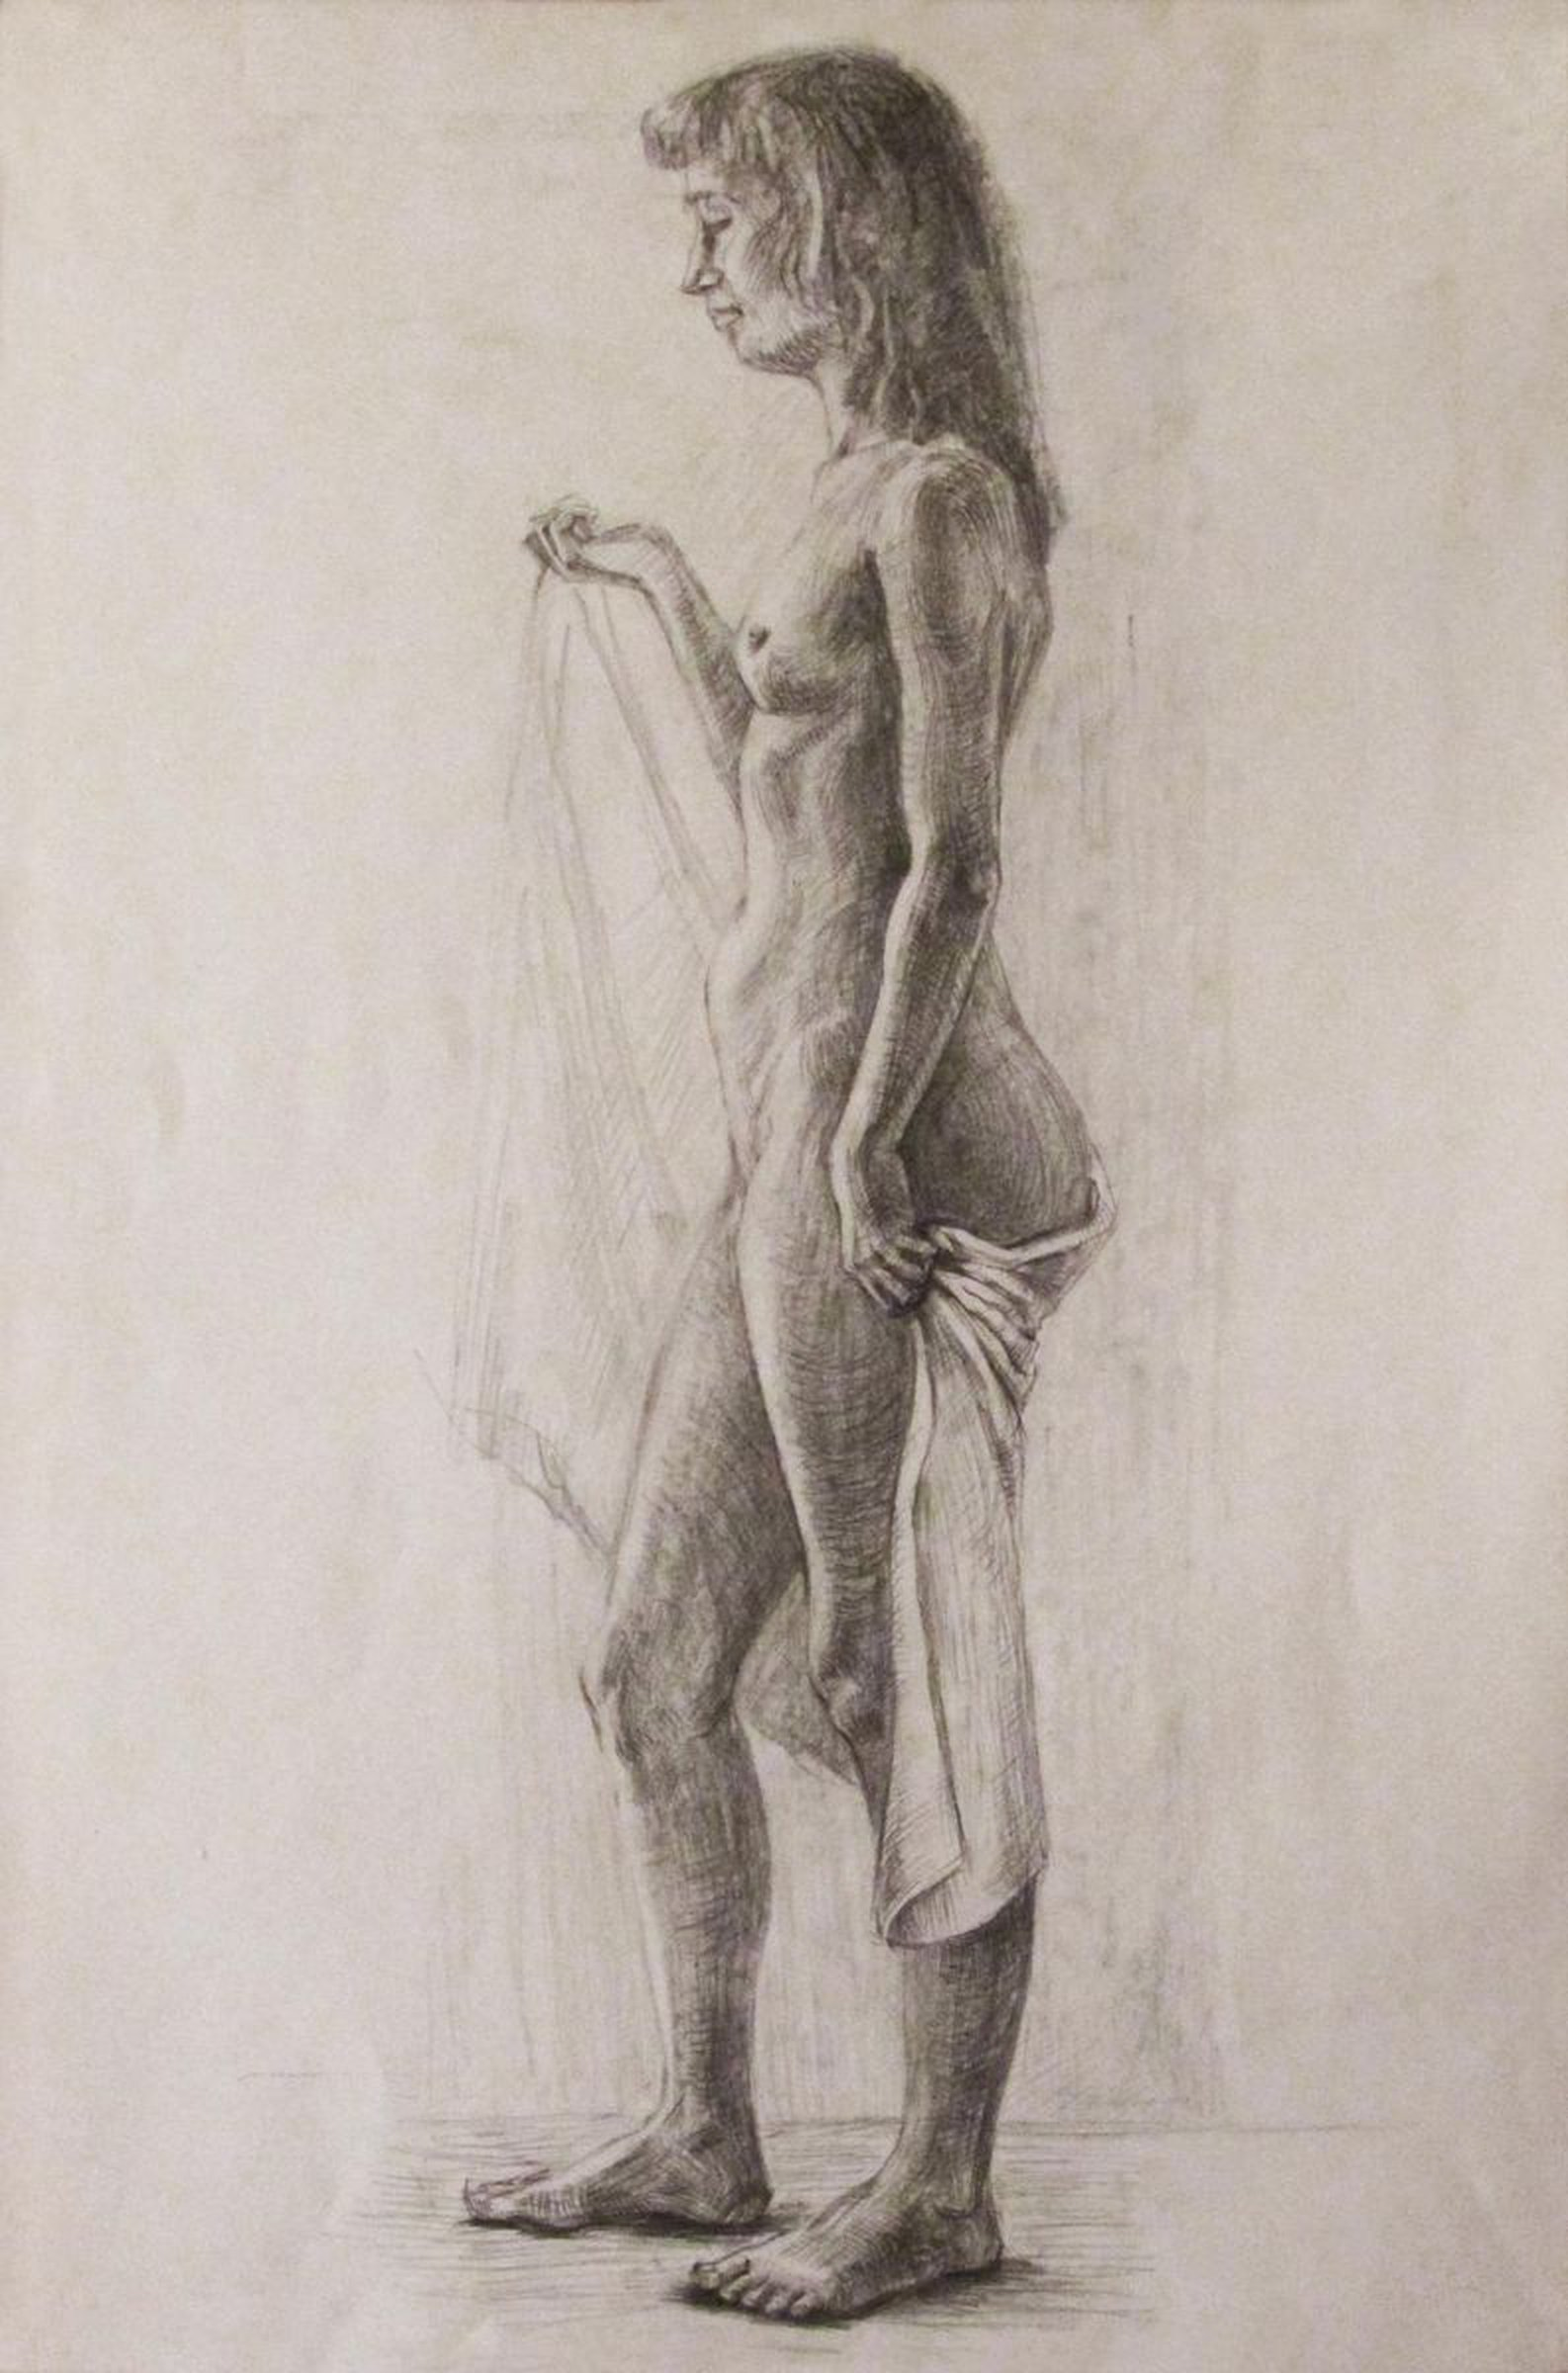 Nude female model 2017 pencil drawing